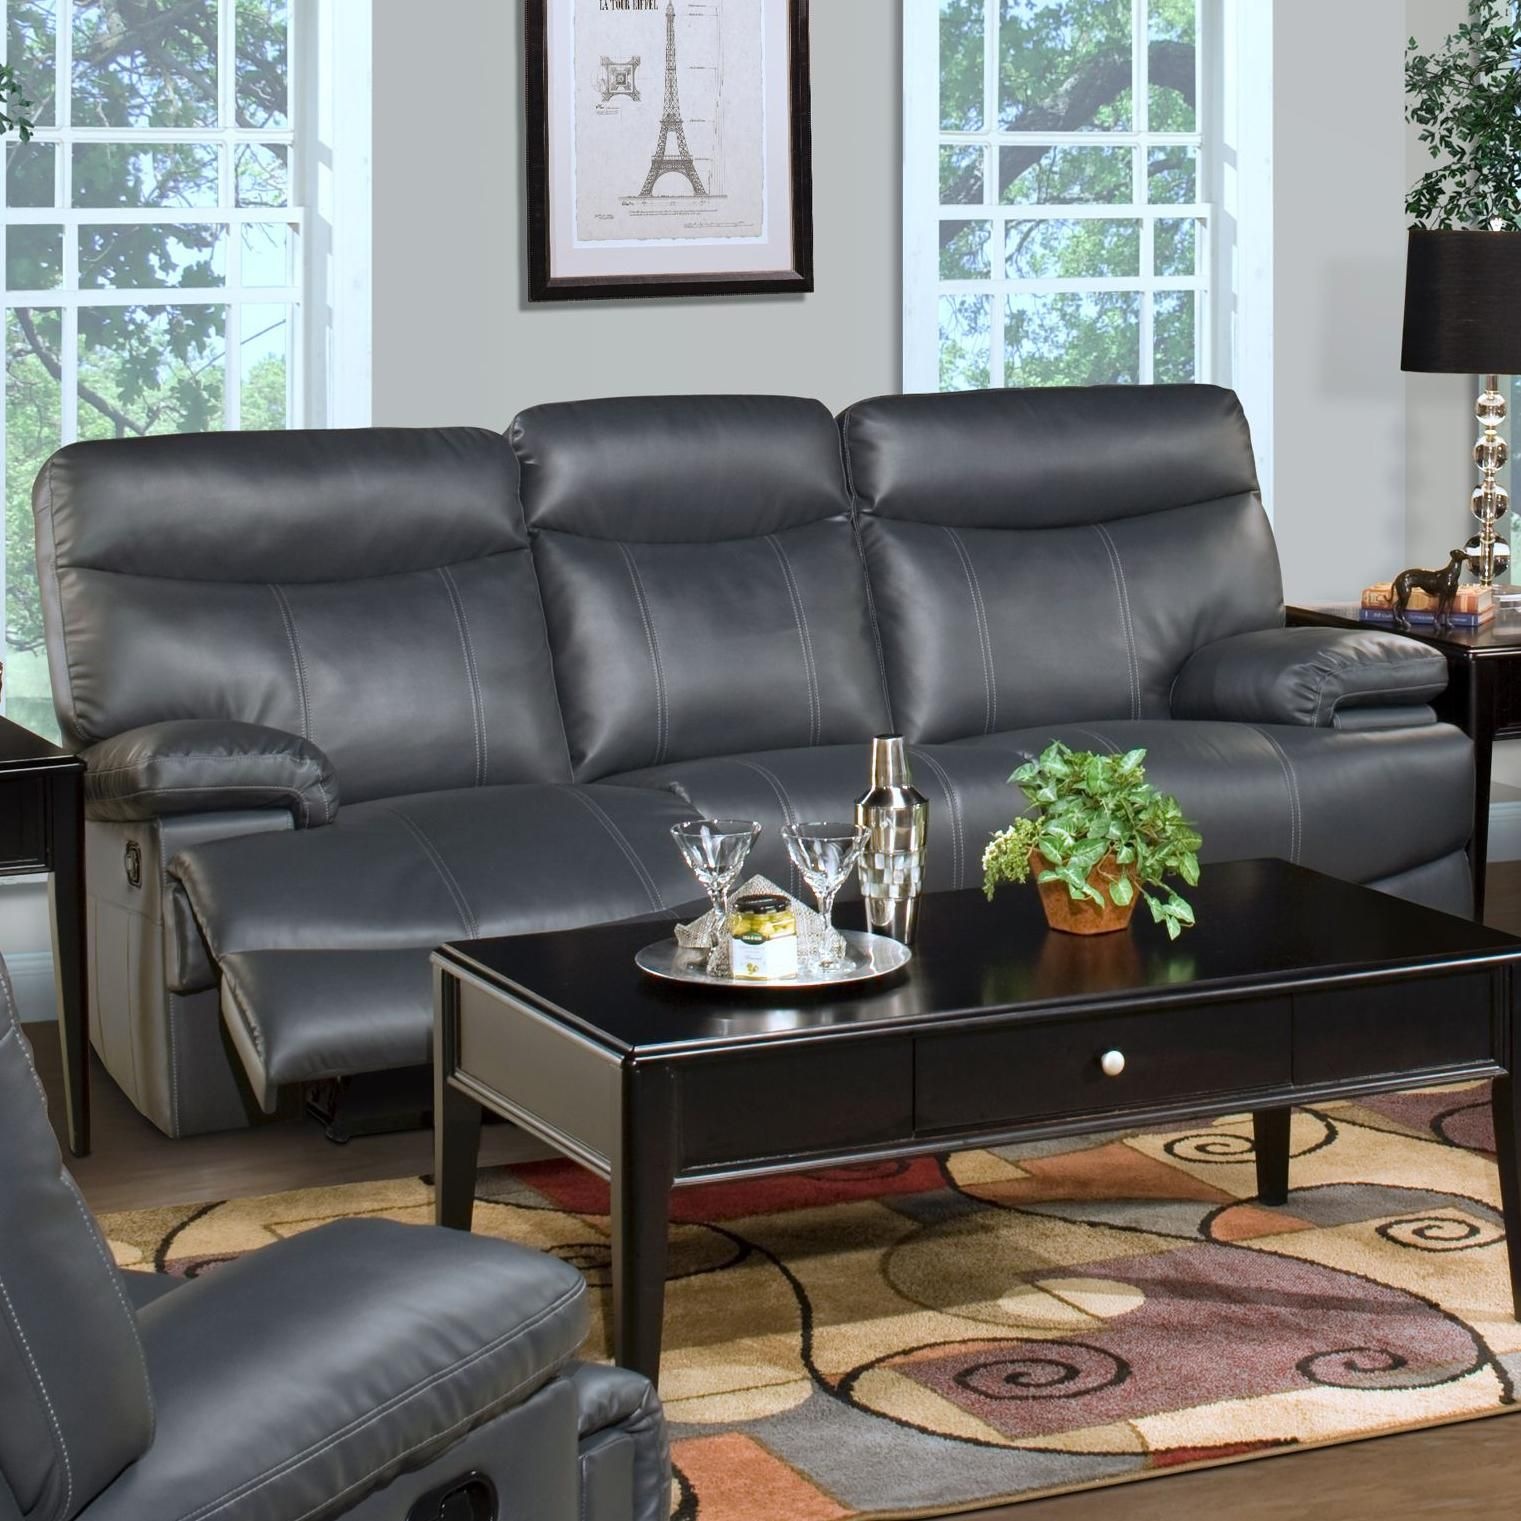 Best Apollo Reclining Sofa By New Classic Sofa Inspiration 400 x 300